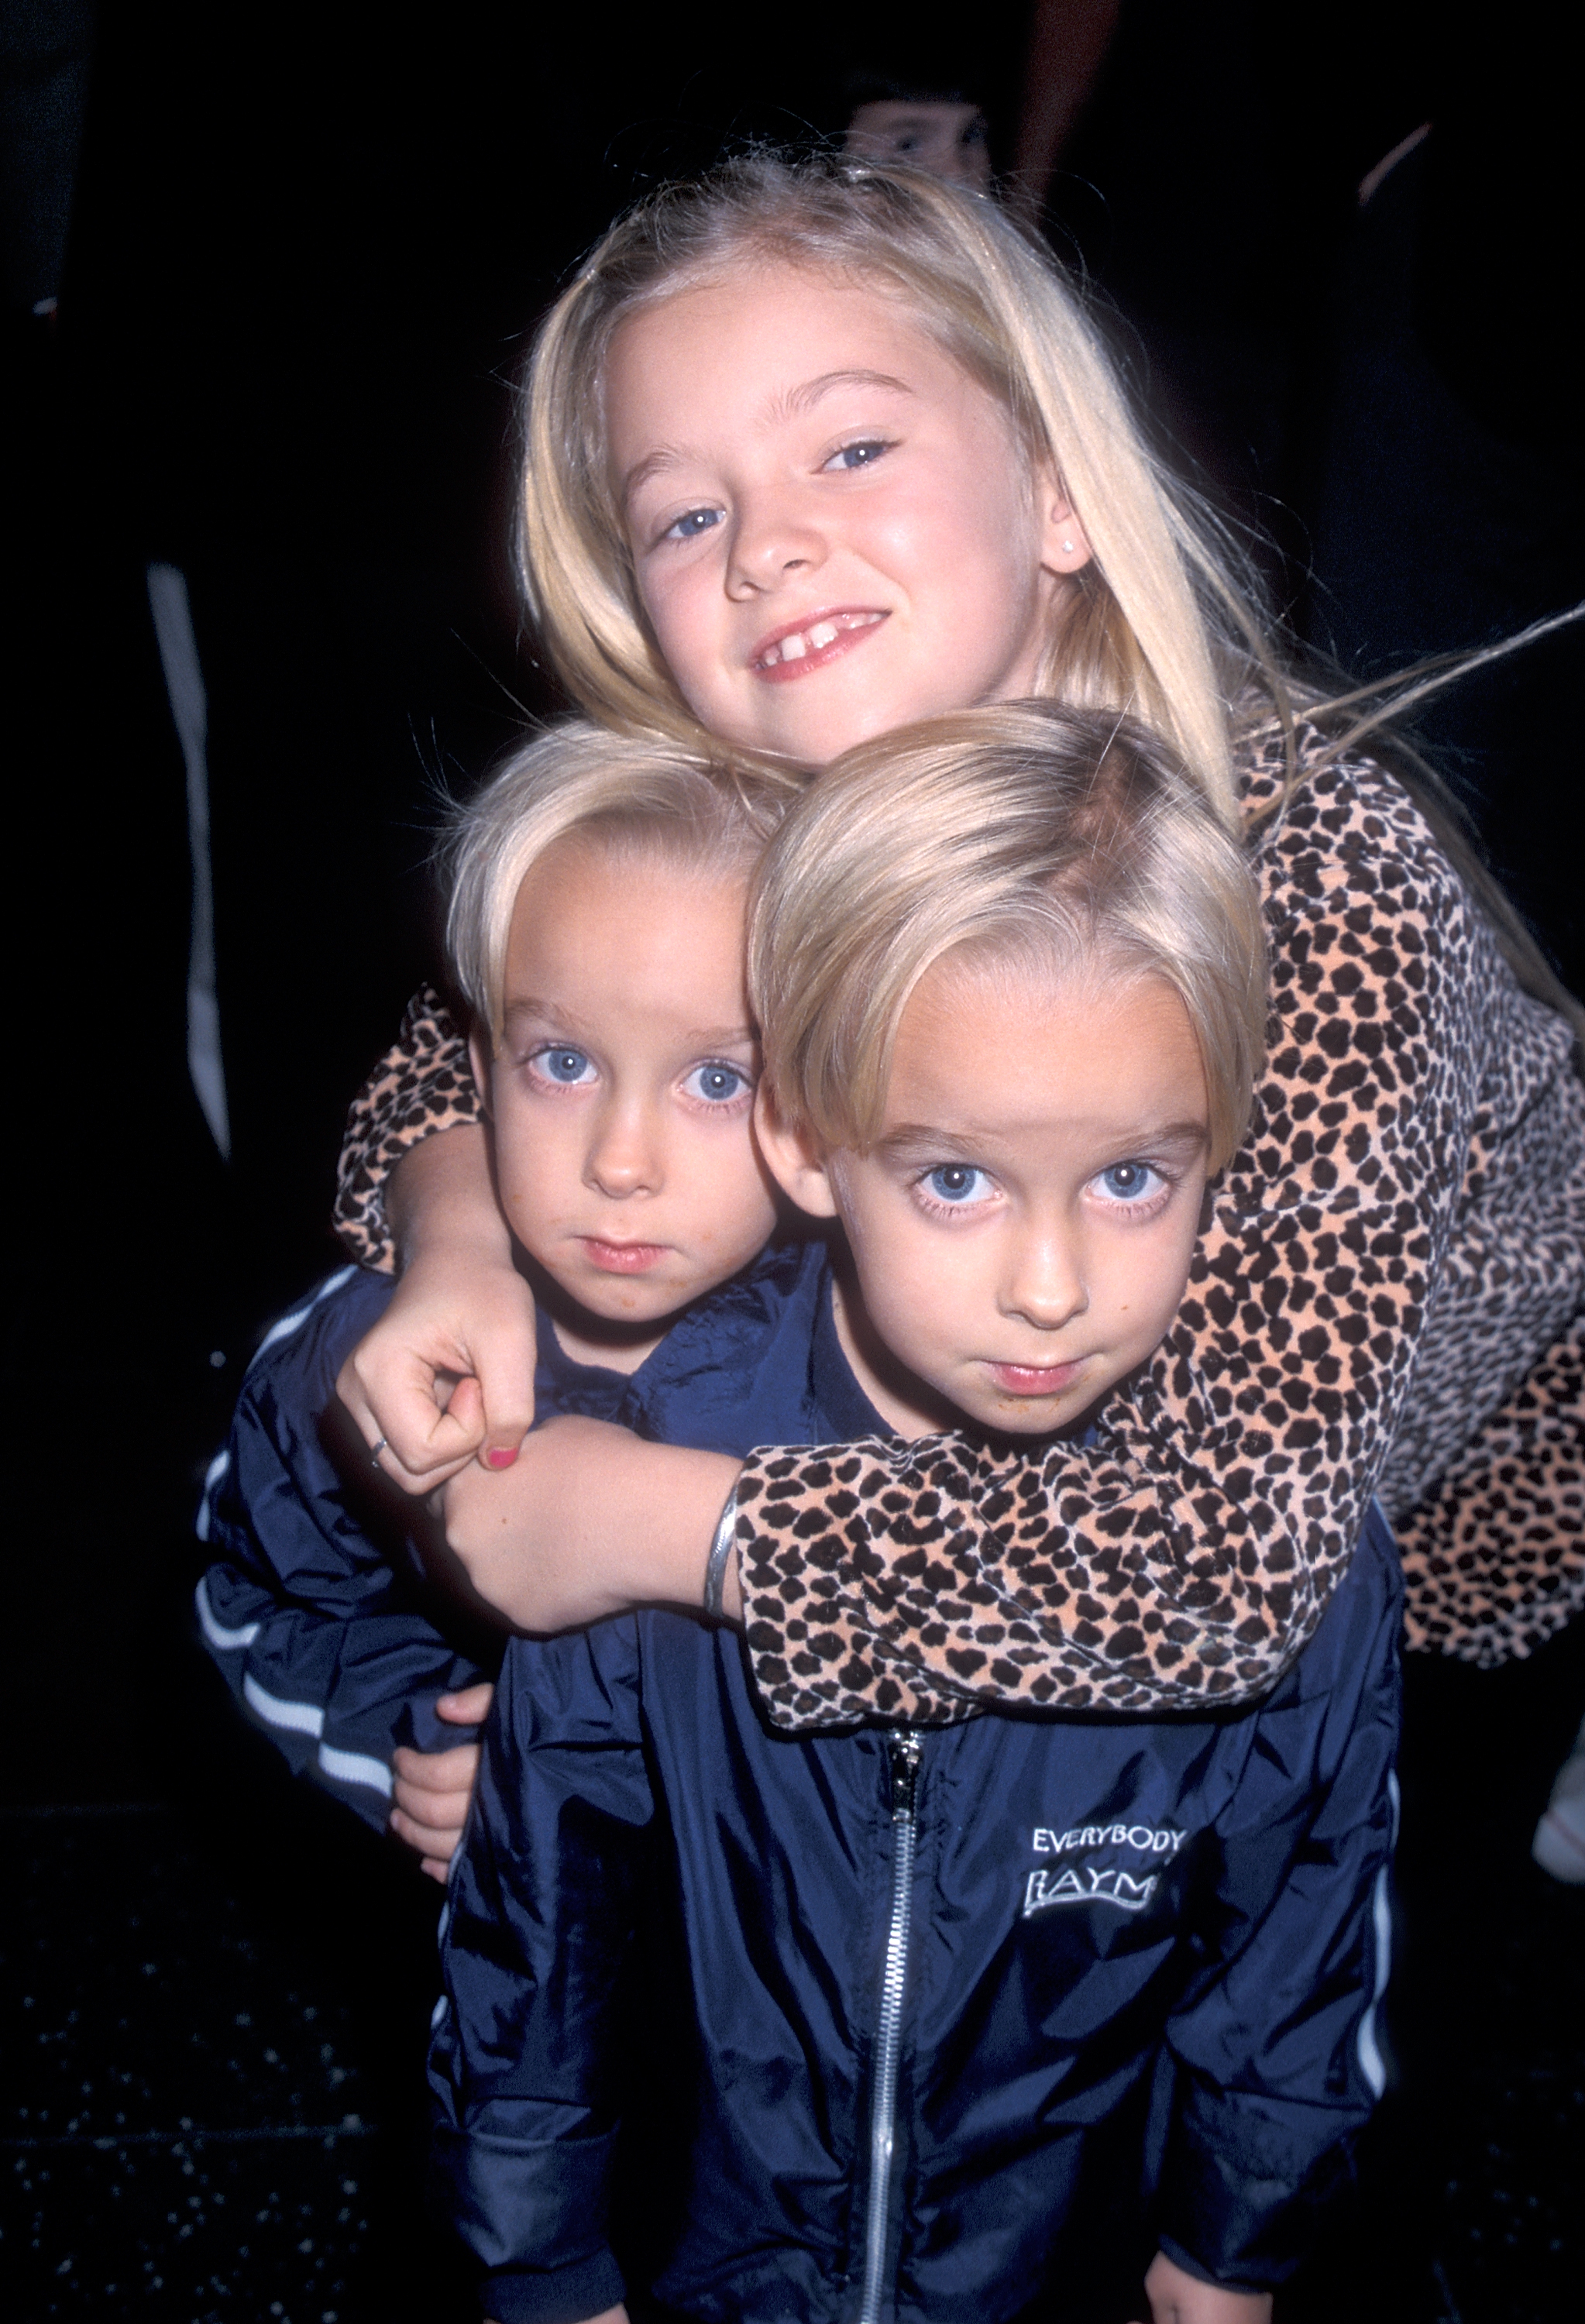 Everybody Loves Raymond, twins, Sawyer and Sullivan Sweeten, what happened